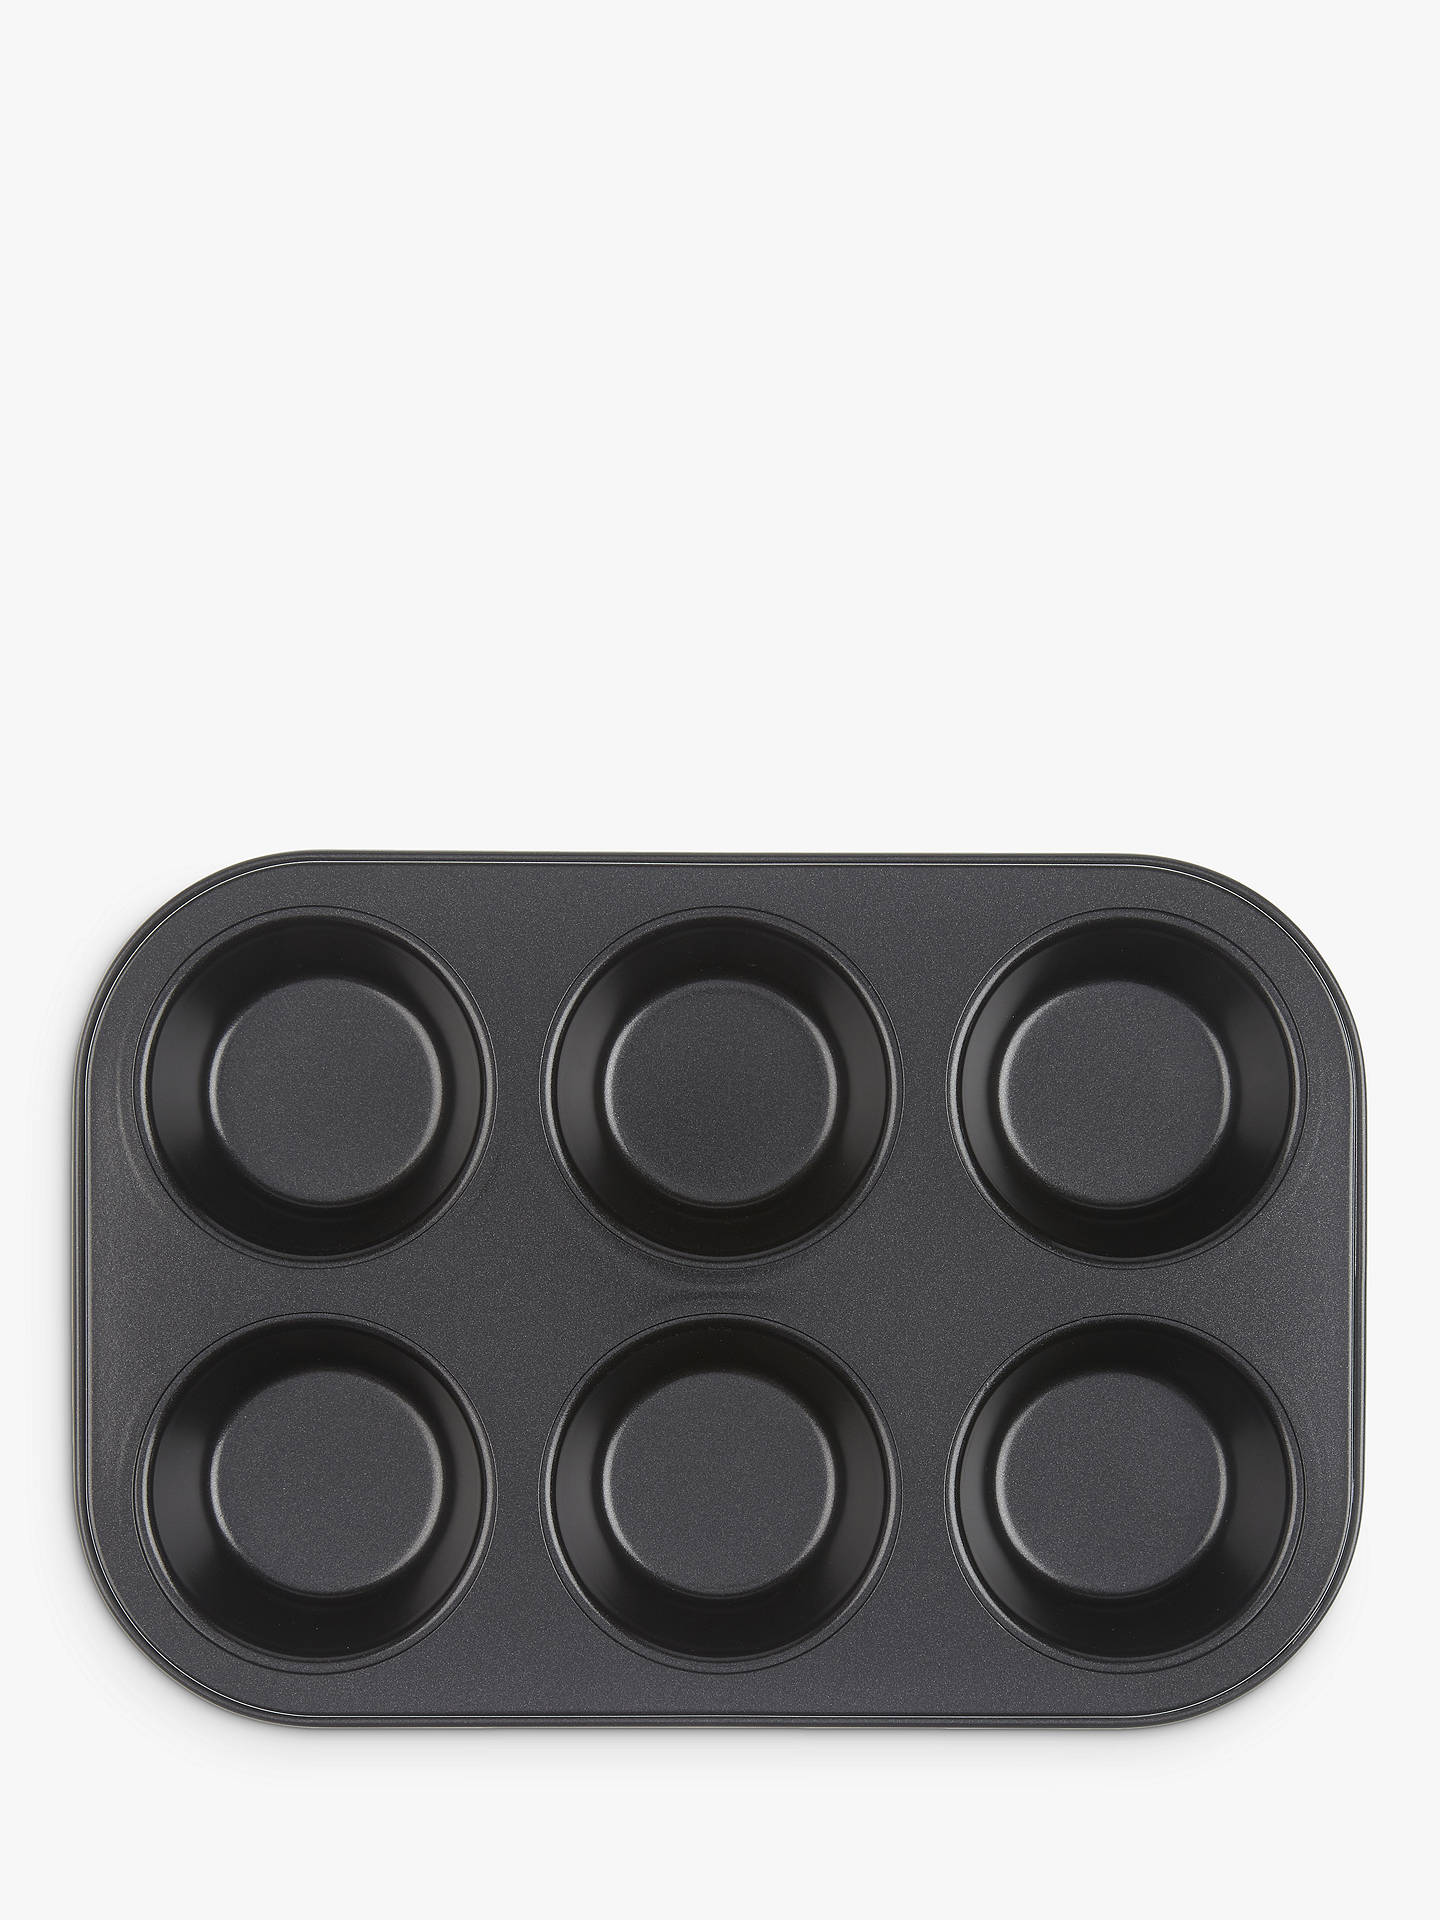 BuyJohn Lewis & Partners Professional Non-Stick Muffin Tray, 6 Cup Online at johnlewis.com